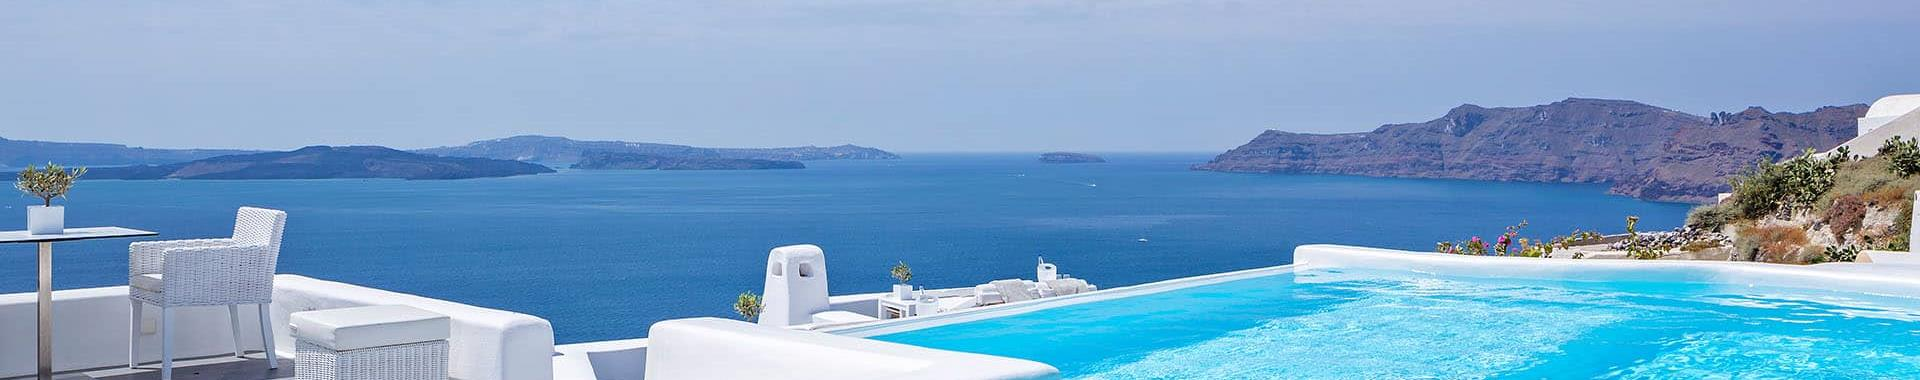 Imerovigli or Karterados Santorini Hotels with Infinity Pool